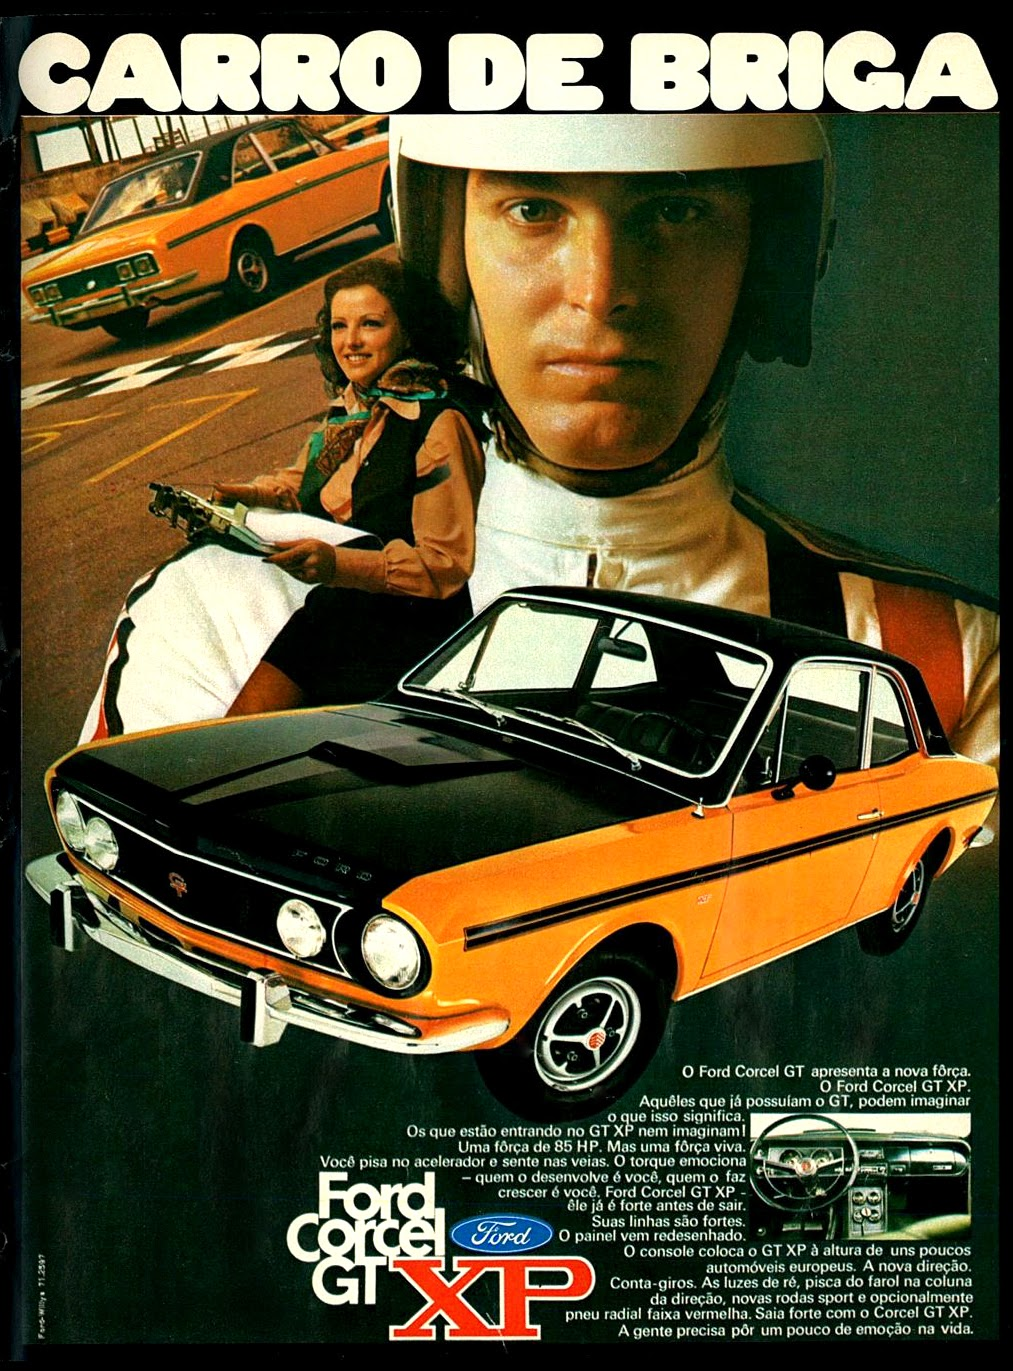 Ford. 1971; brazilian advertising cars in the 70s; os anos 70; história da década de 70; Brazil in the 70s; propaganda carros anos 70; Oswaldo Hernandez;